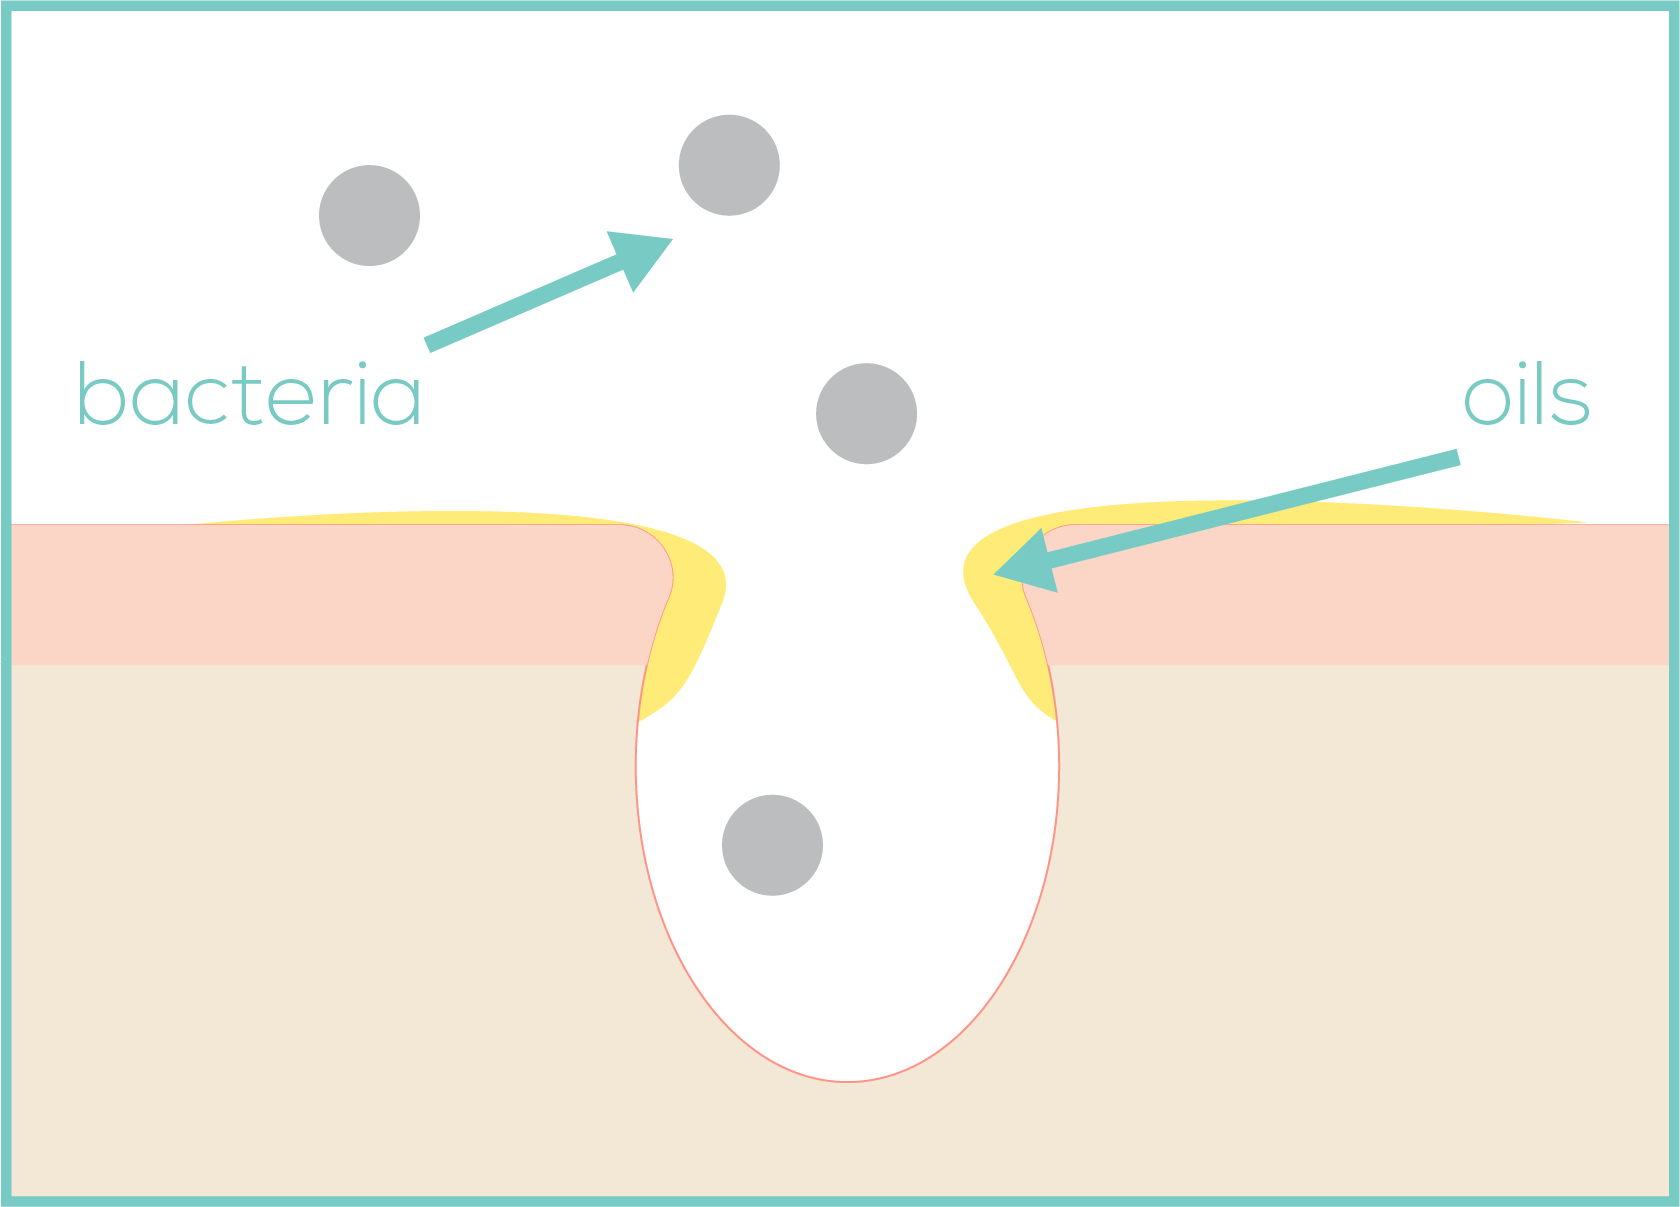 Wider pores enable bacteria and pollution to enter pores.